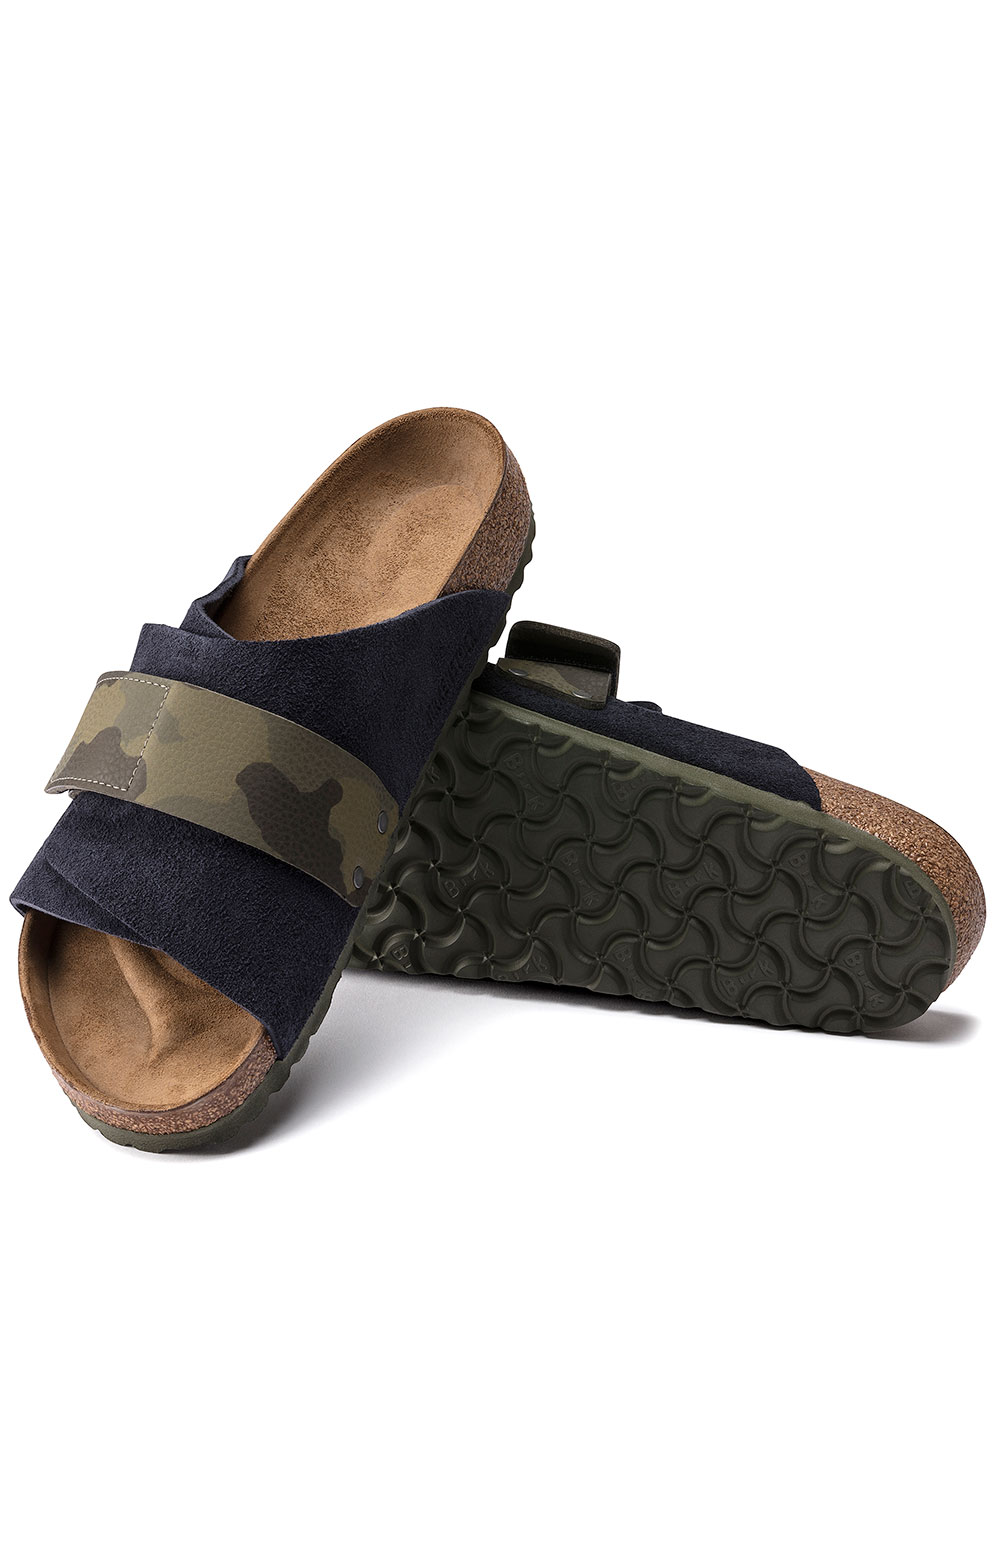 (1019737) Kyoto Sandals - Midnight Camo 4